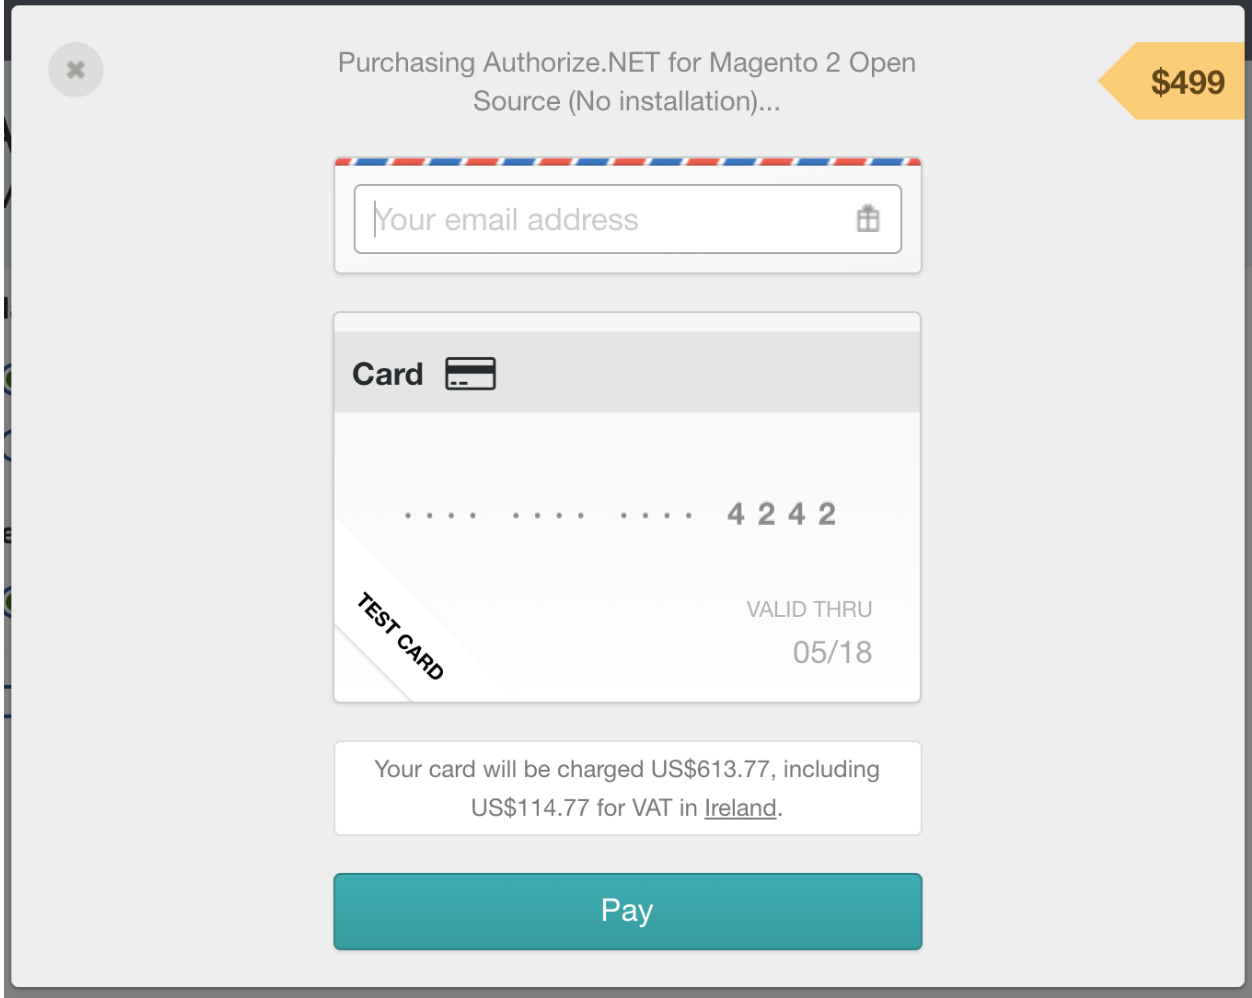 Purchasing Authorize.net extension for Magento 2